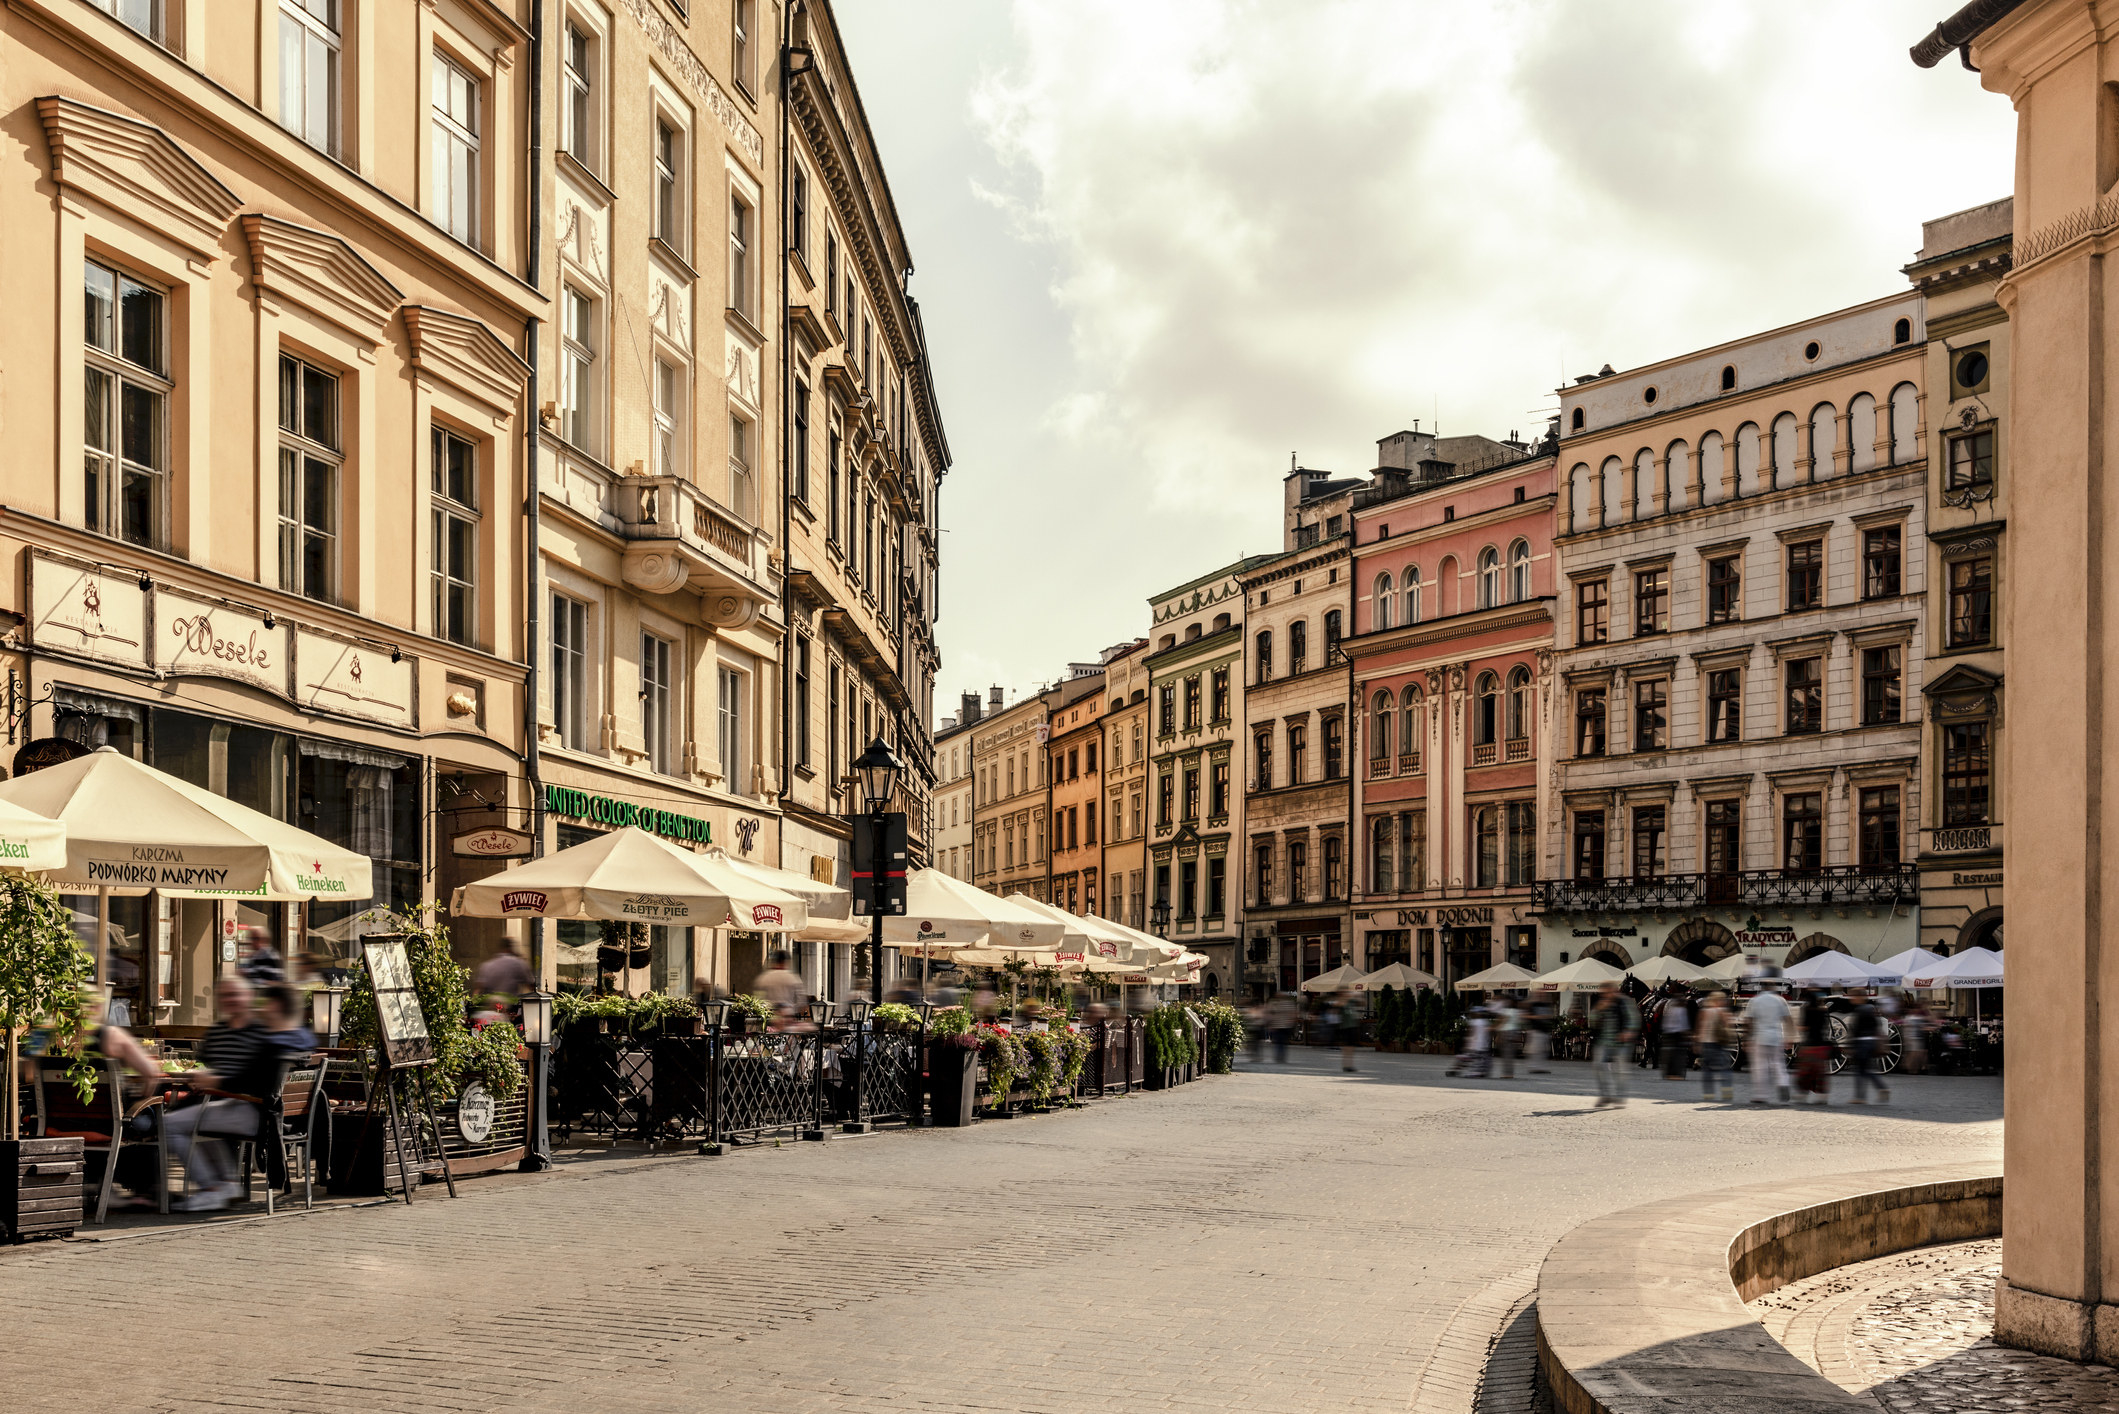 Town houses in the Main Square in Krakow, Poland.